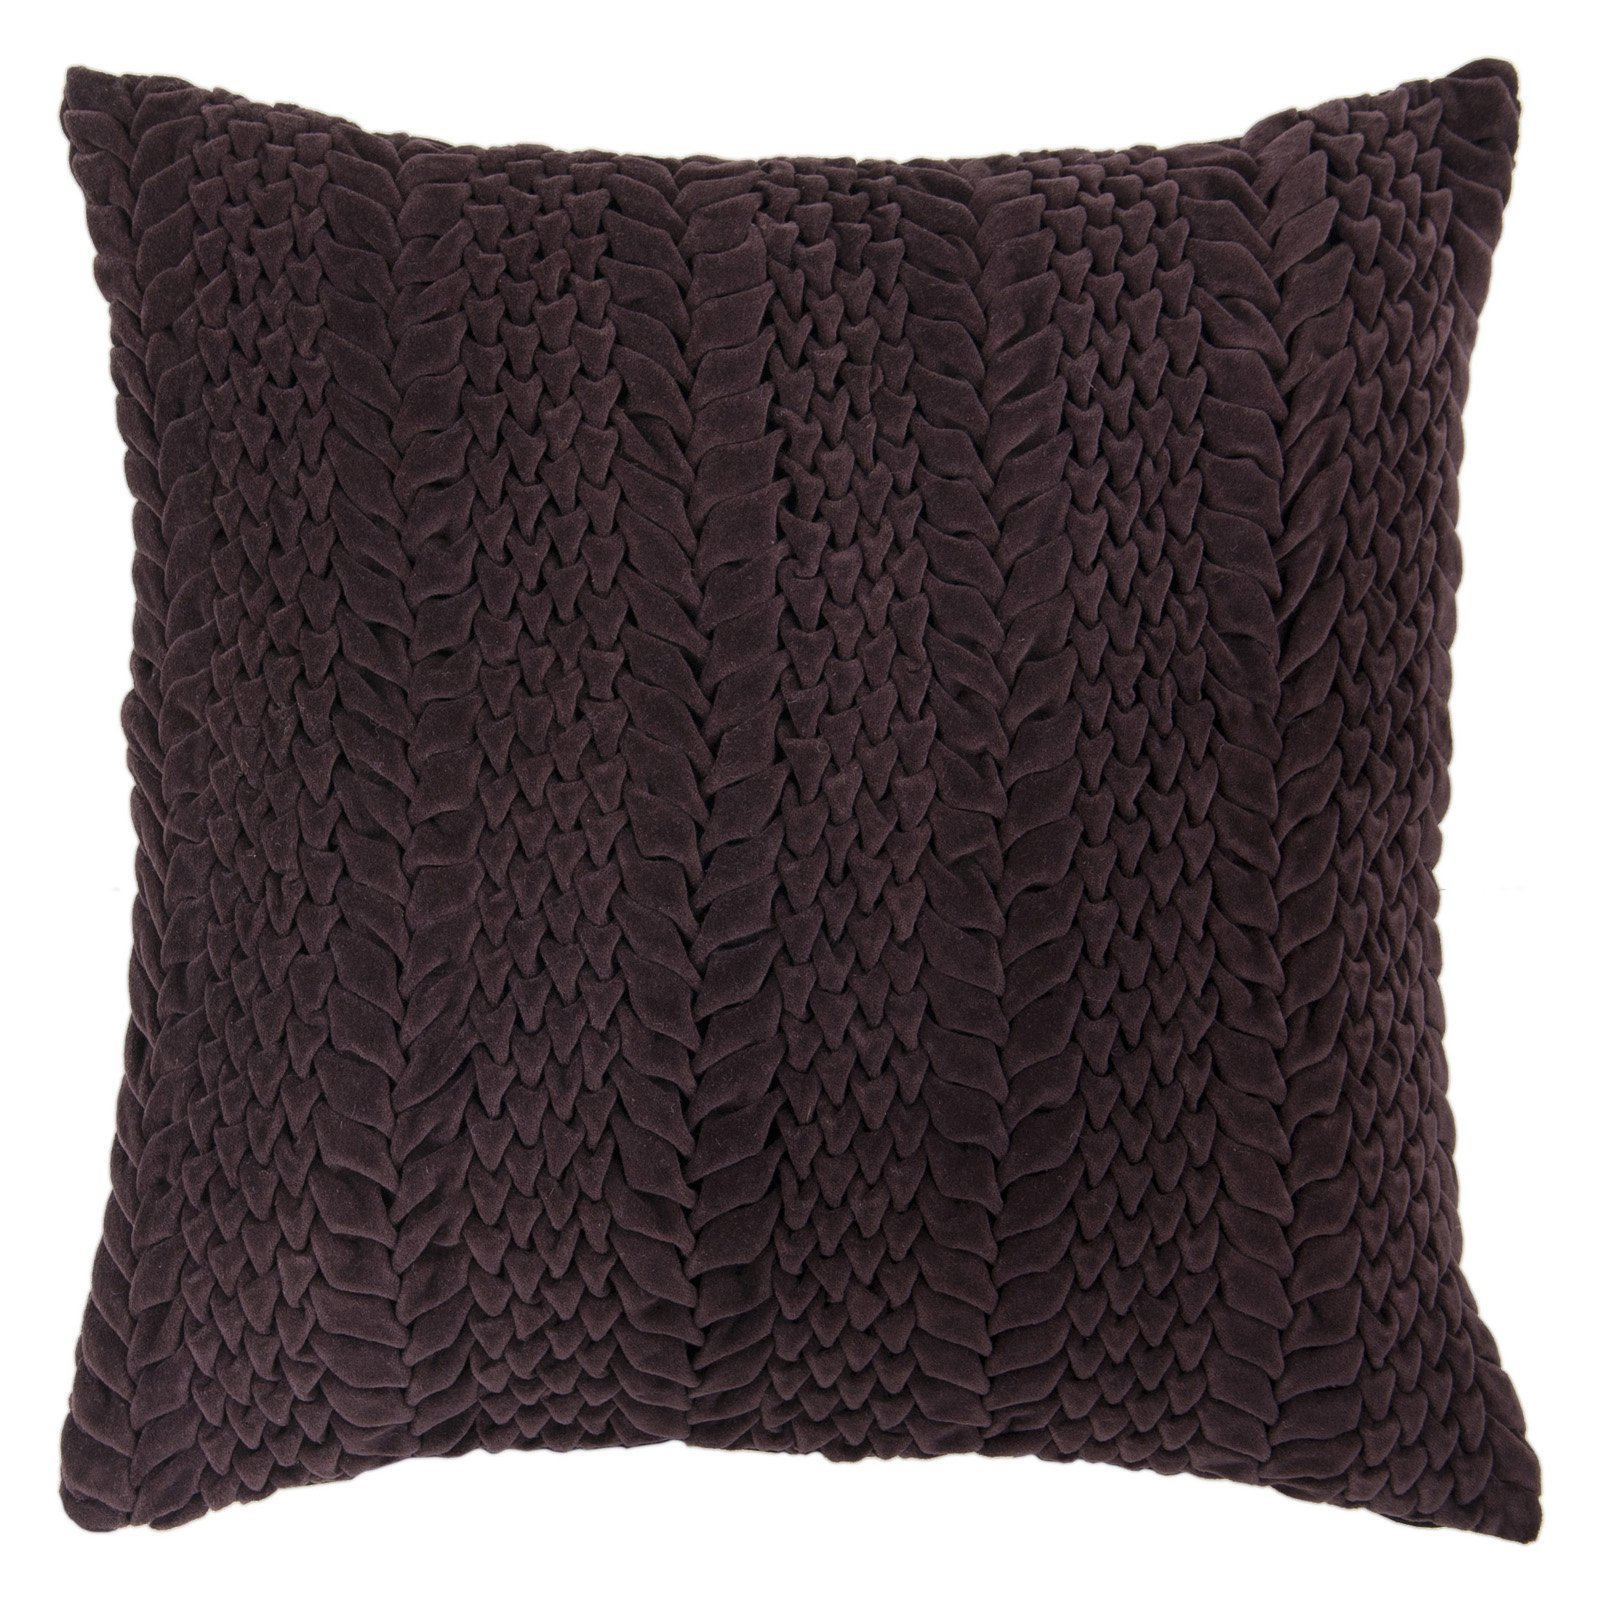 Surya Arrowhead Decorative Pillow - Purple